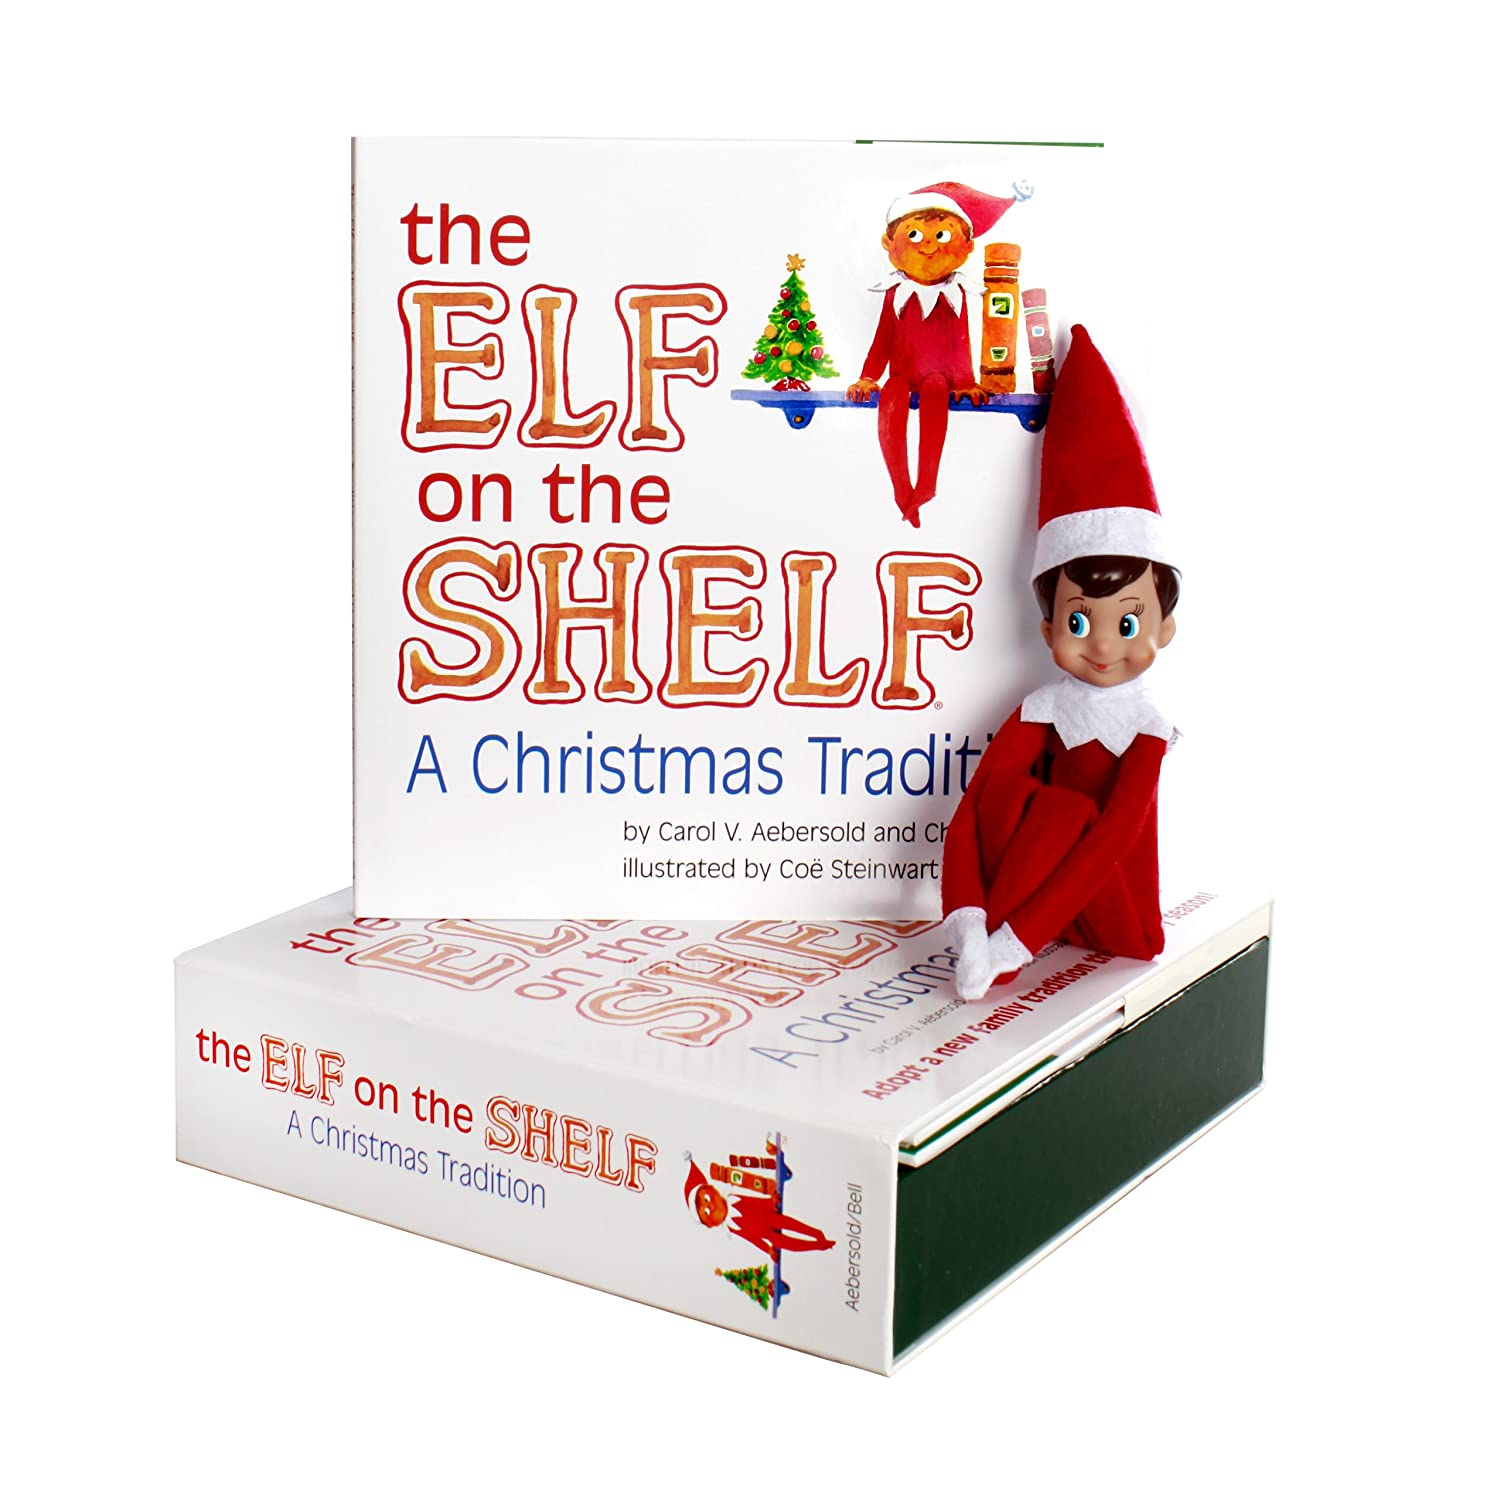 The Elf on the Shelf: A Christmas Tradition with Blue Eyed North Pole Pixie-Elf